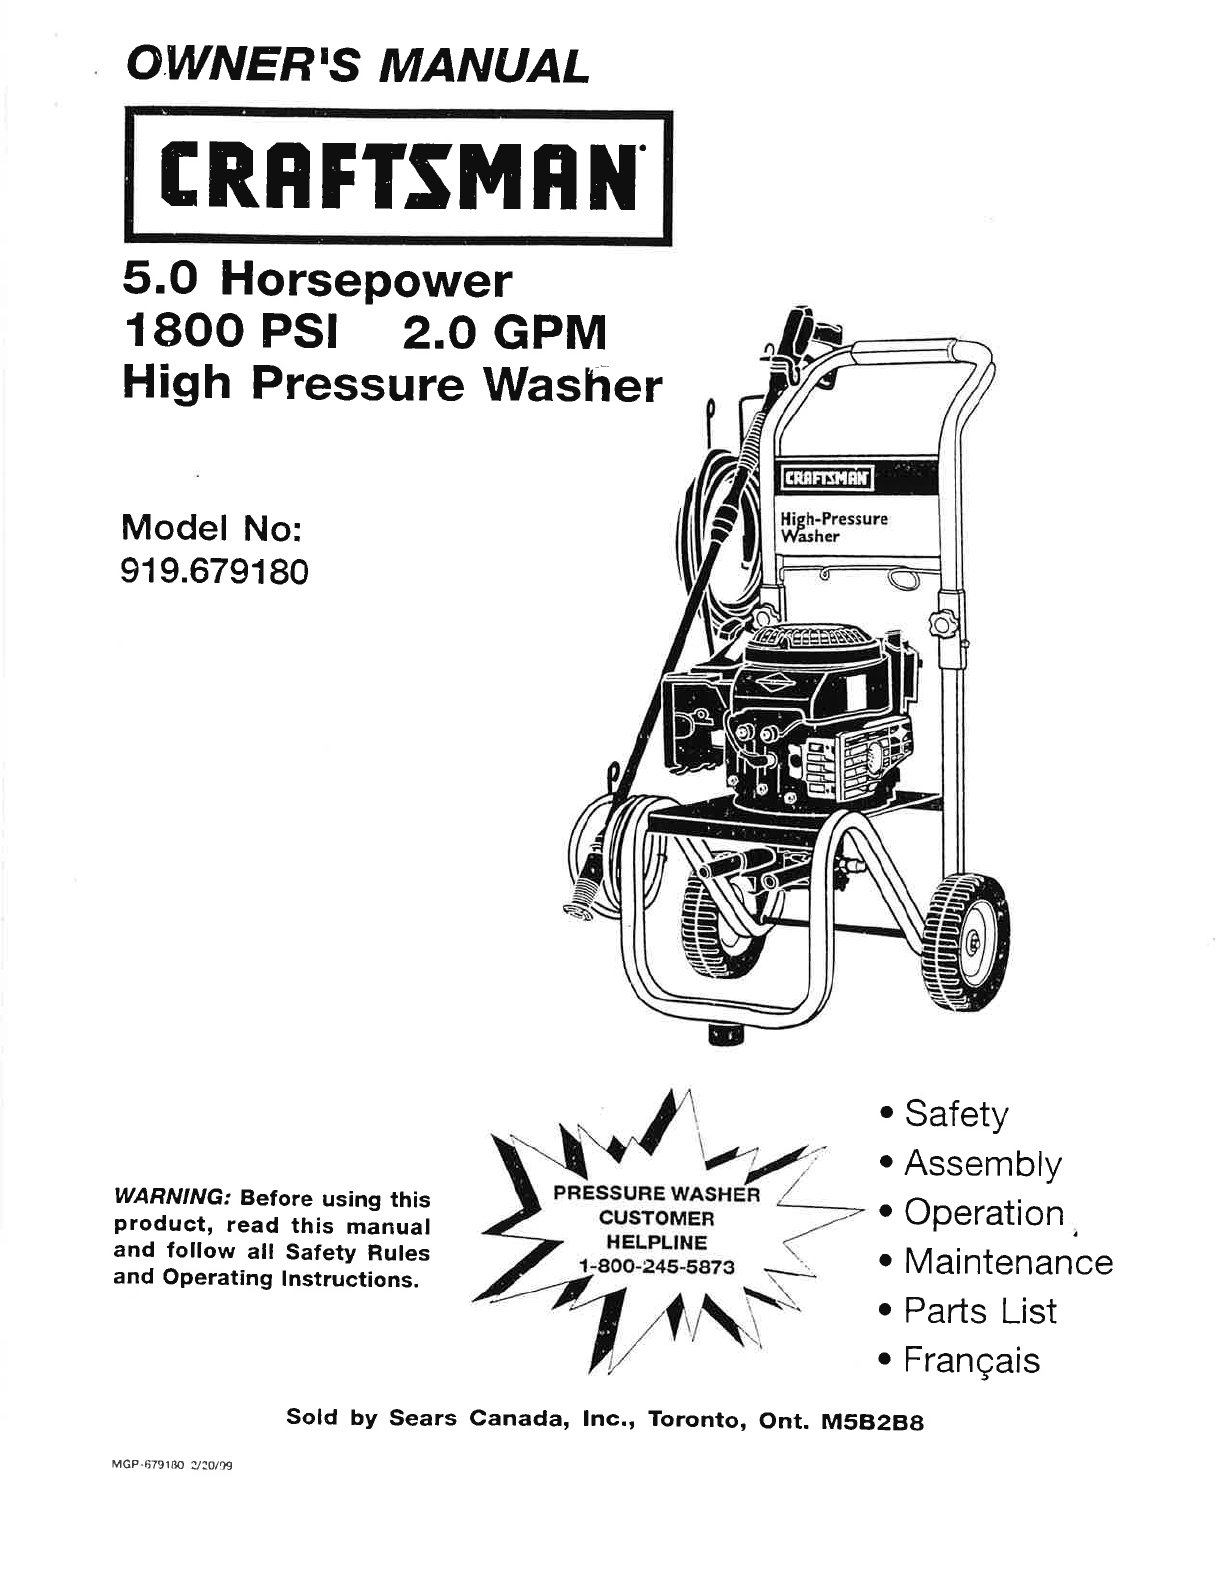 Craftsman Pressure Washer 919.679180 User Guide